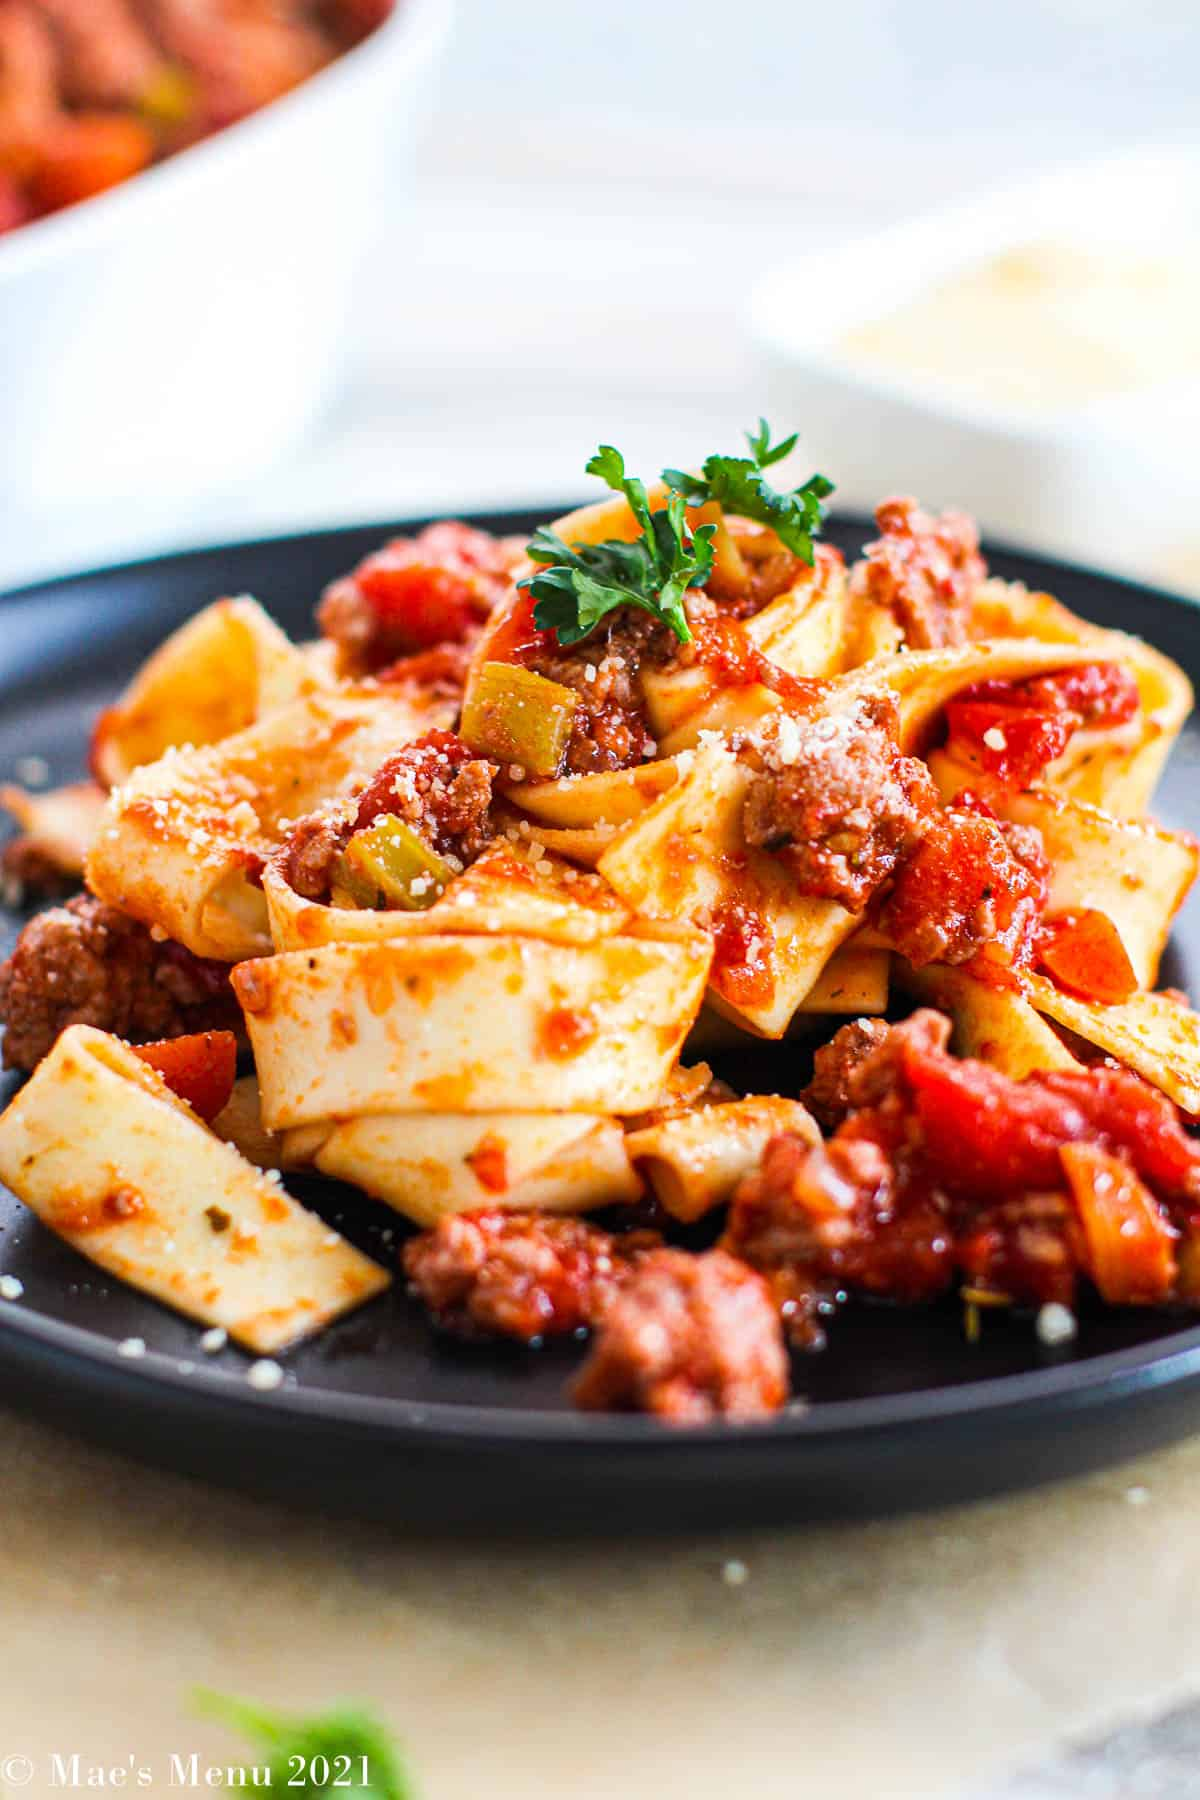 An up-close side shot of the bolognese sauce on pappardelle noodles